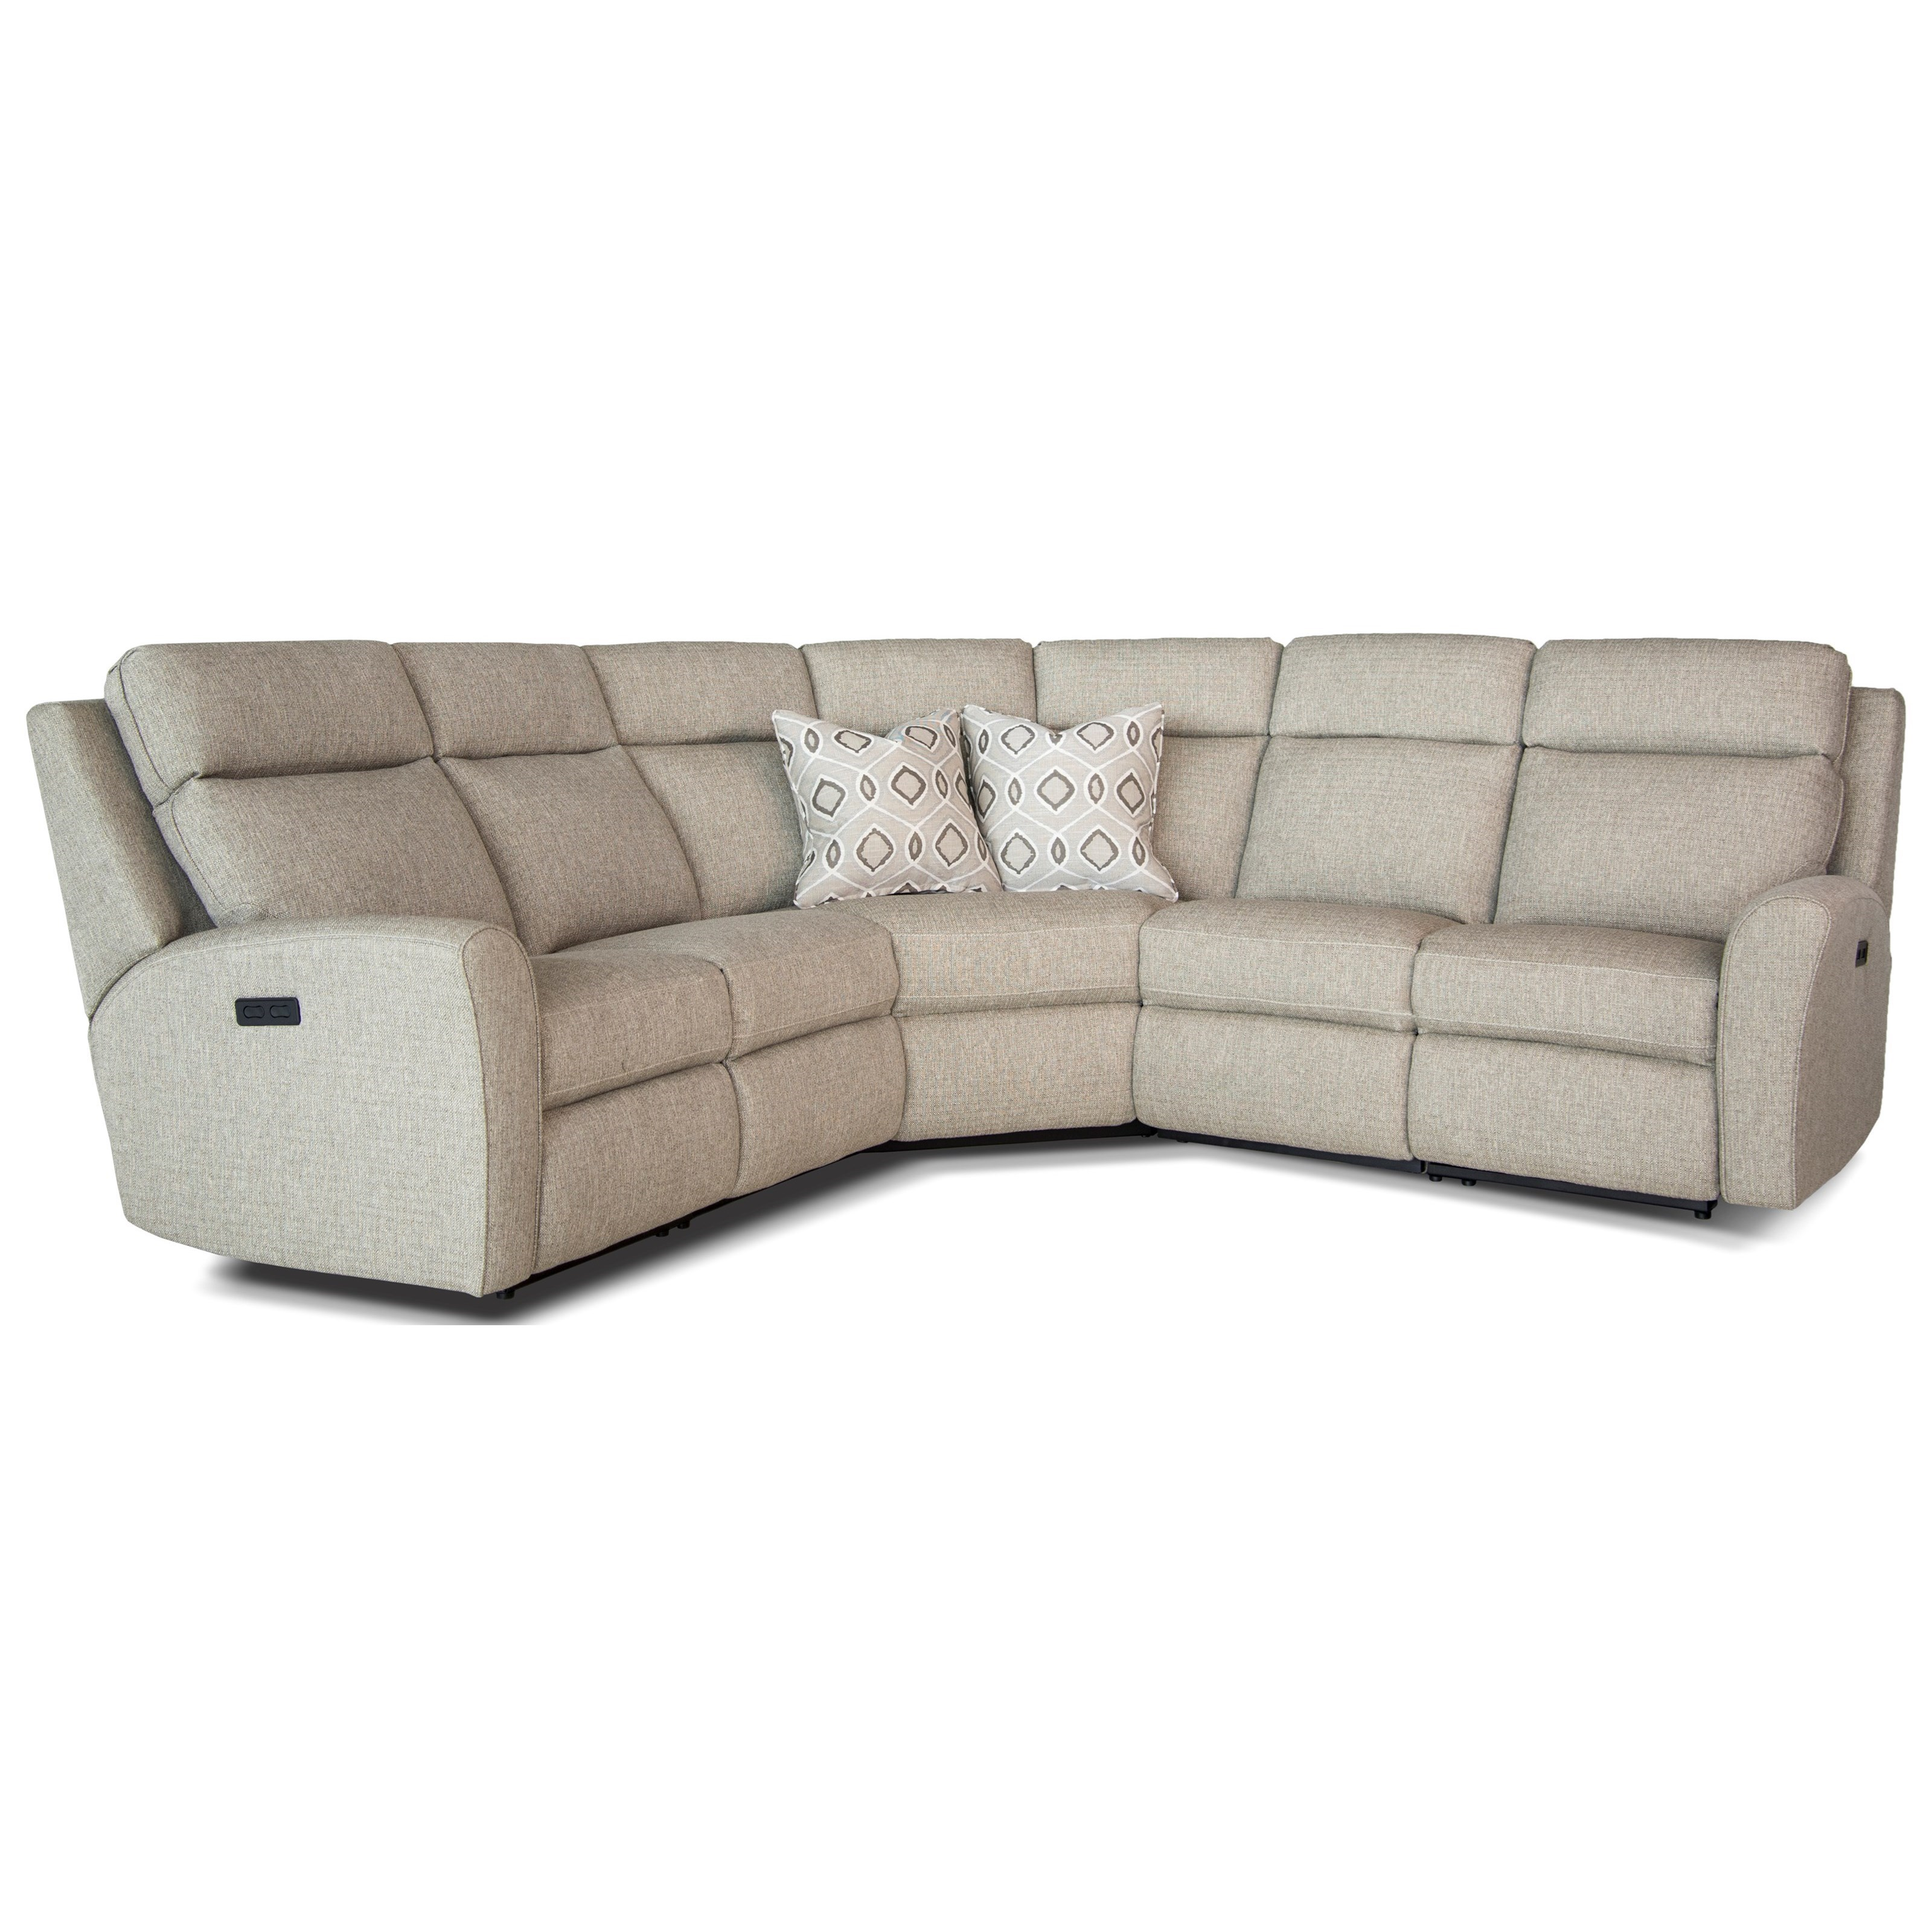 418 Motorized Reclining Sectional Sofa by Smith Brothers at Story & Lee Furniture